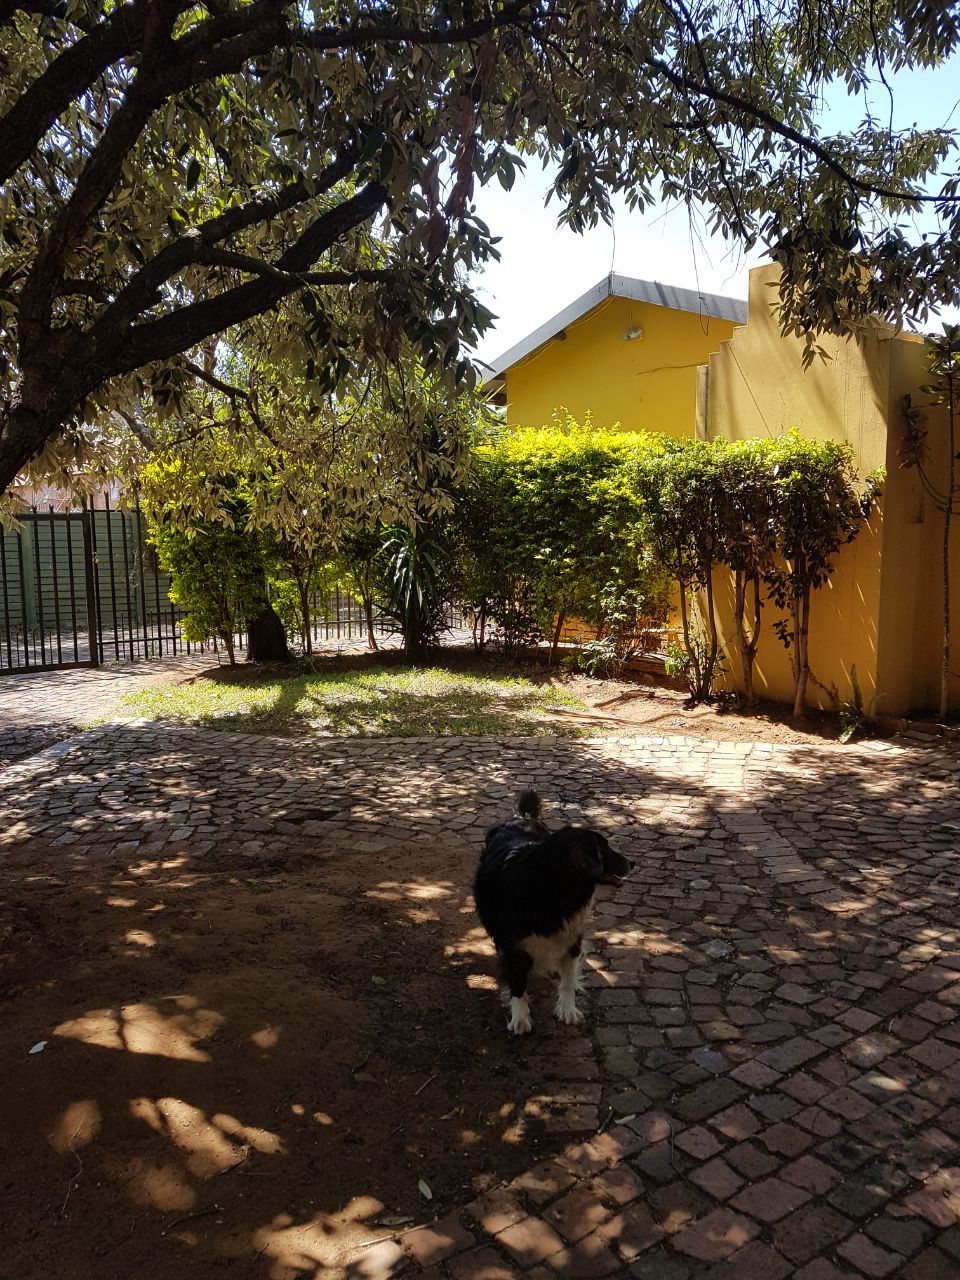 3 Bedroom house with bachelor flat for sale in Silverton